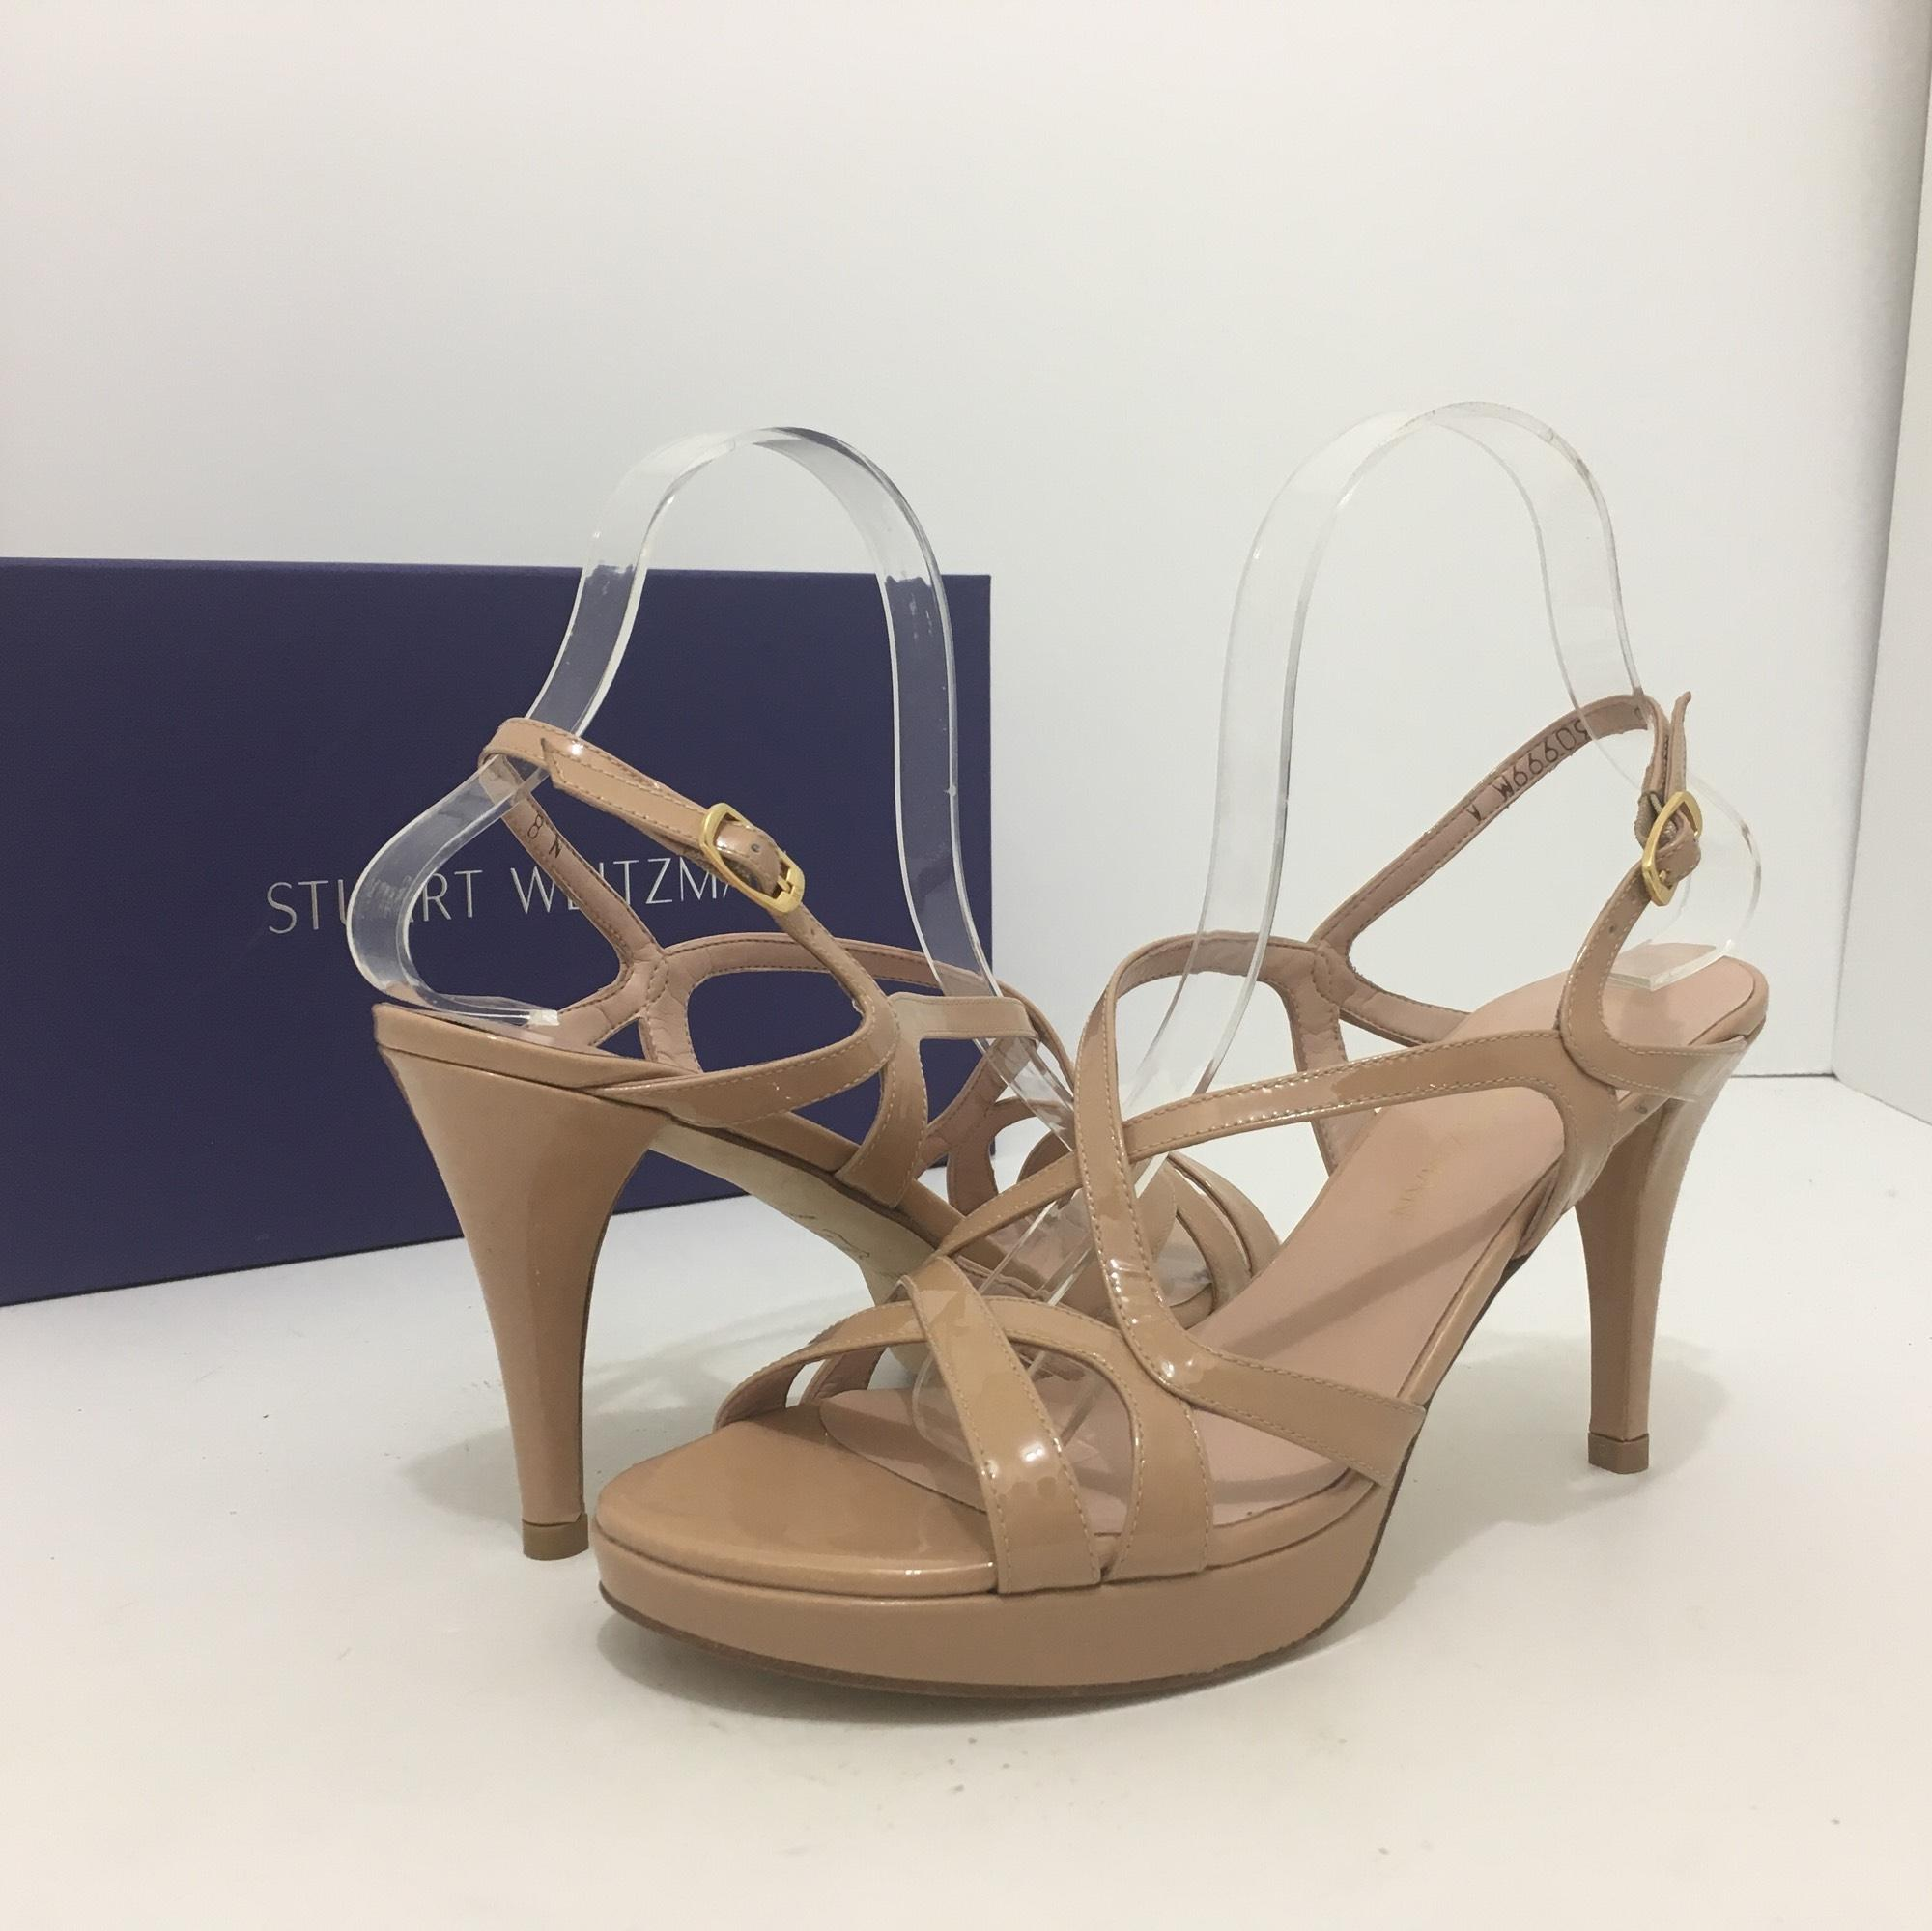 Stuart Weitzman Adobe Aniline Patent Leather - Nude Axis Women's Platform  High Sandals Size US 8 Narrow (Aa, N) - Tradesy